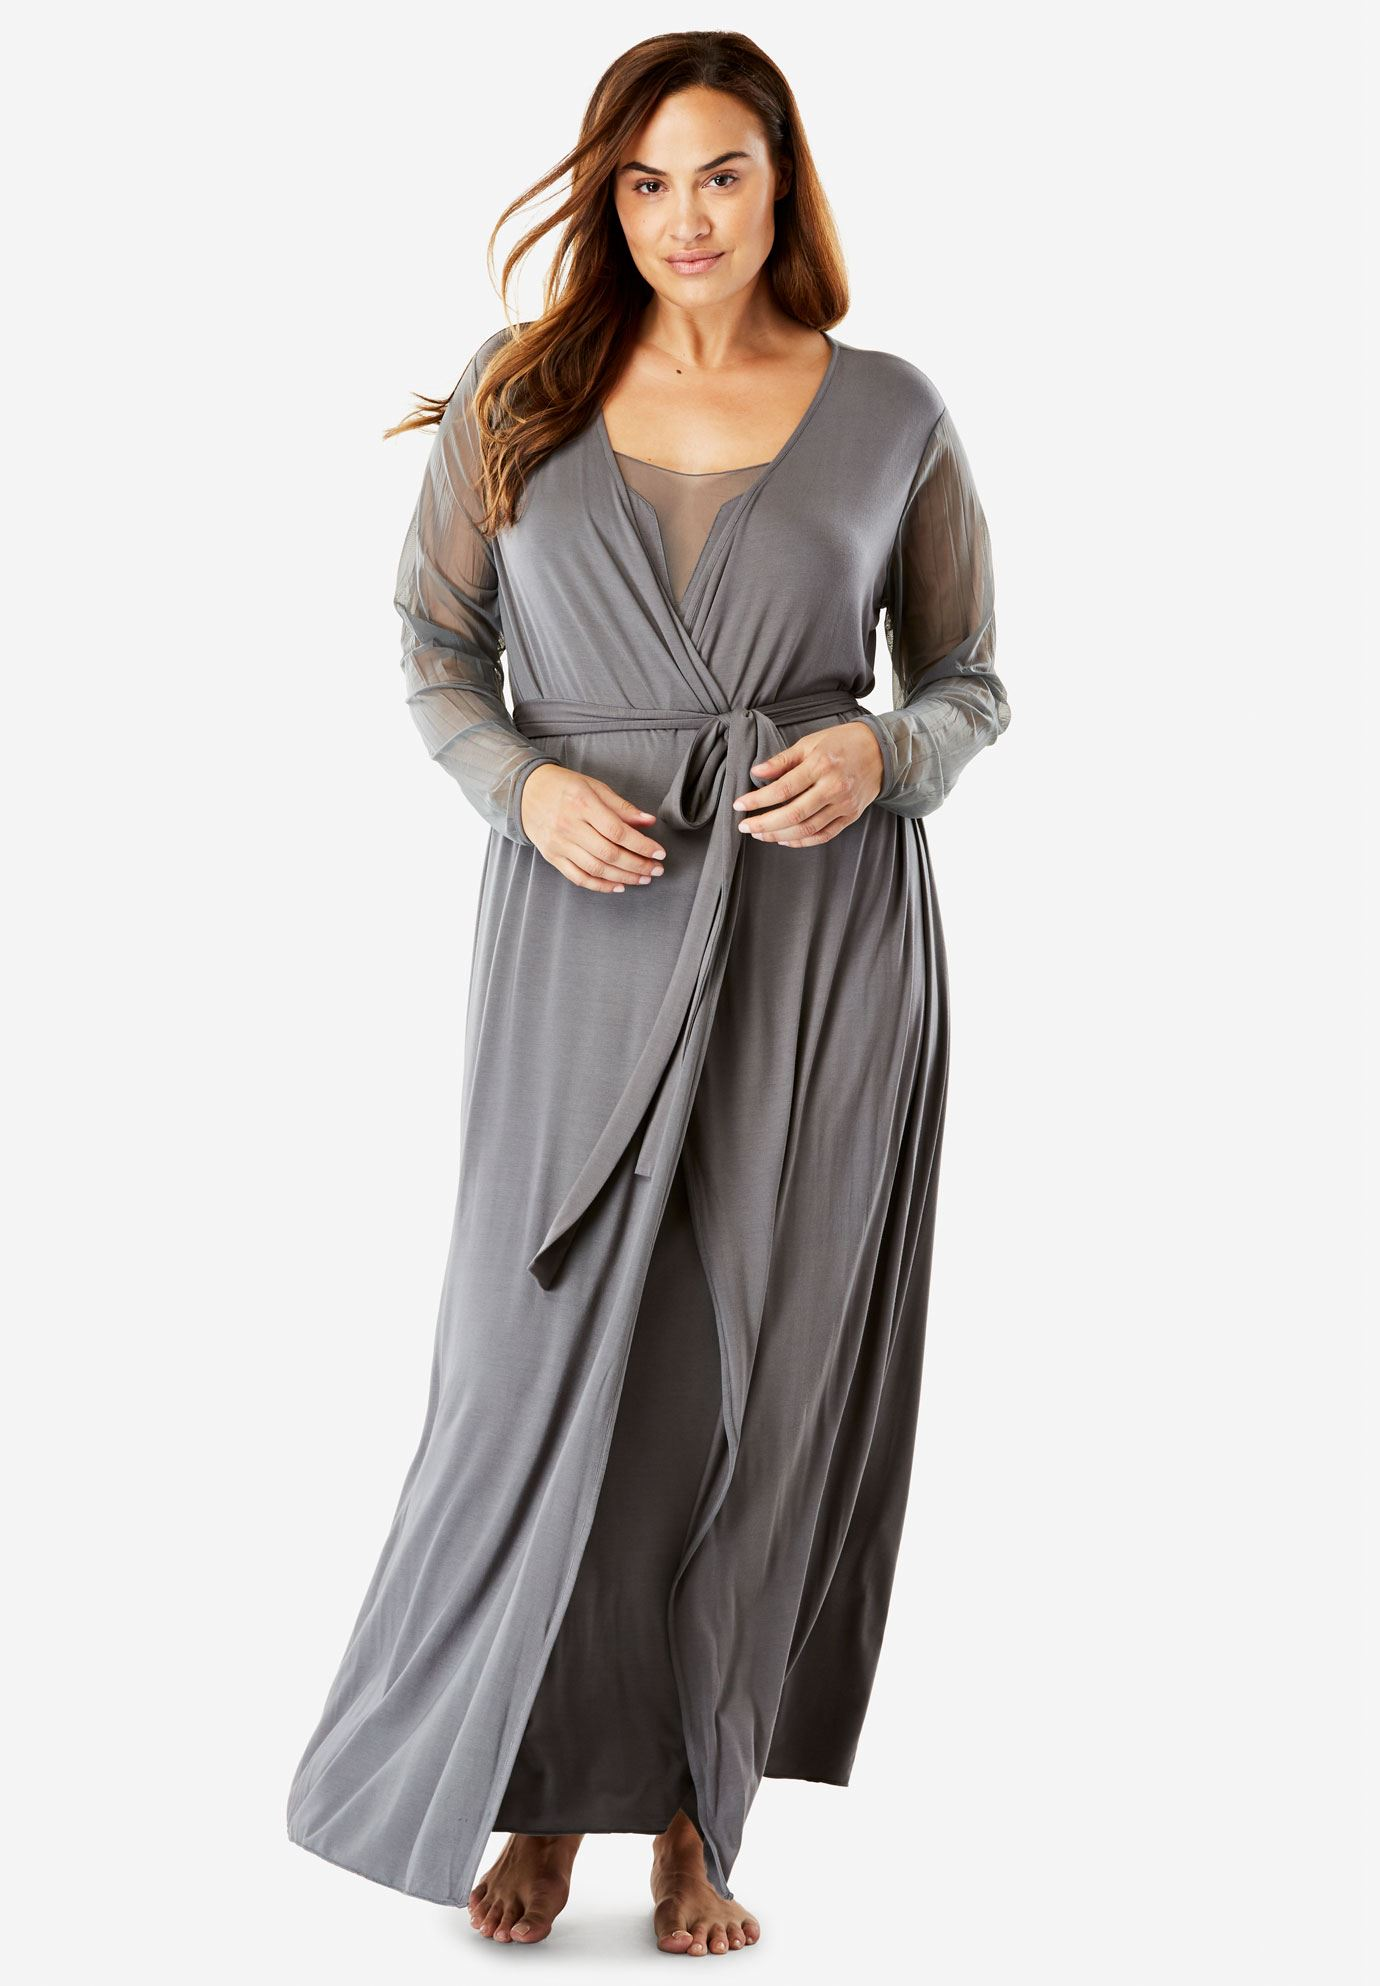 Mesh Nightie And Robe Set By Amoreuse Plus Size Sleep Gowns